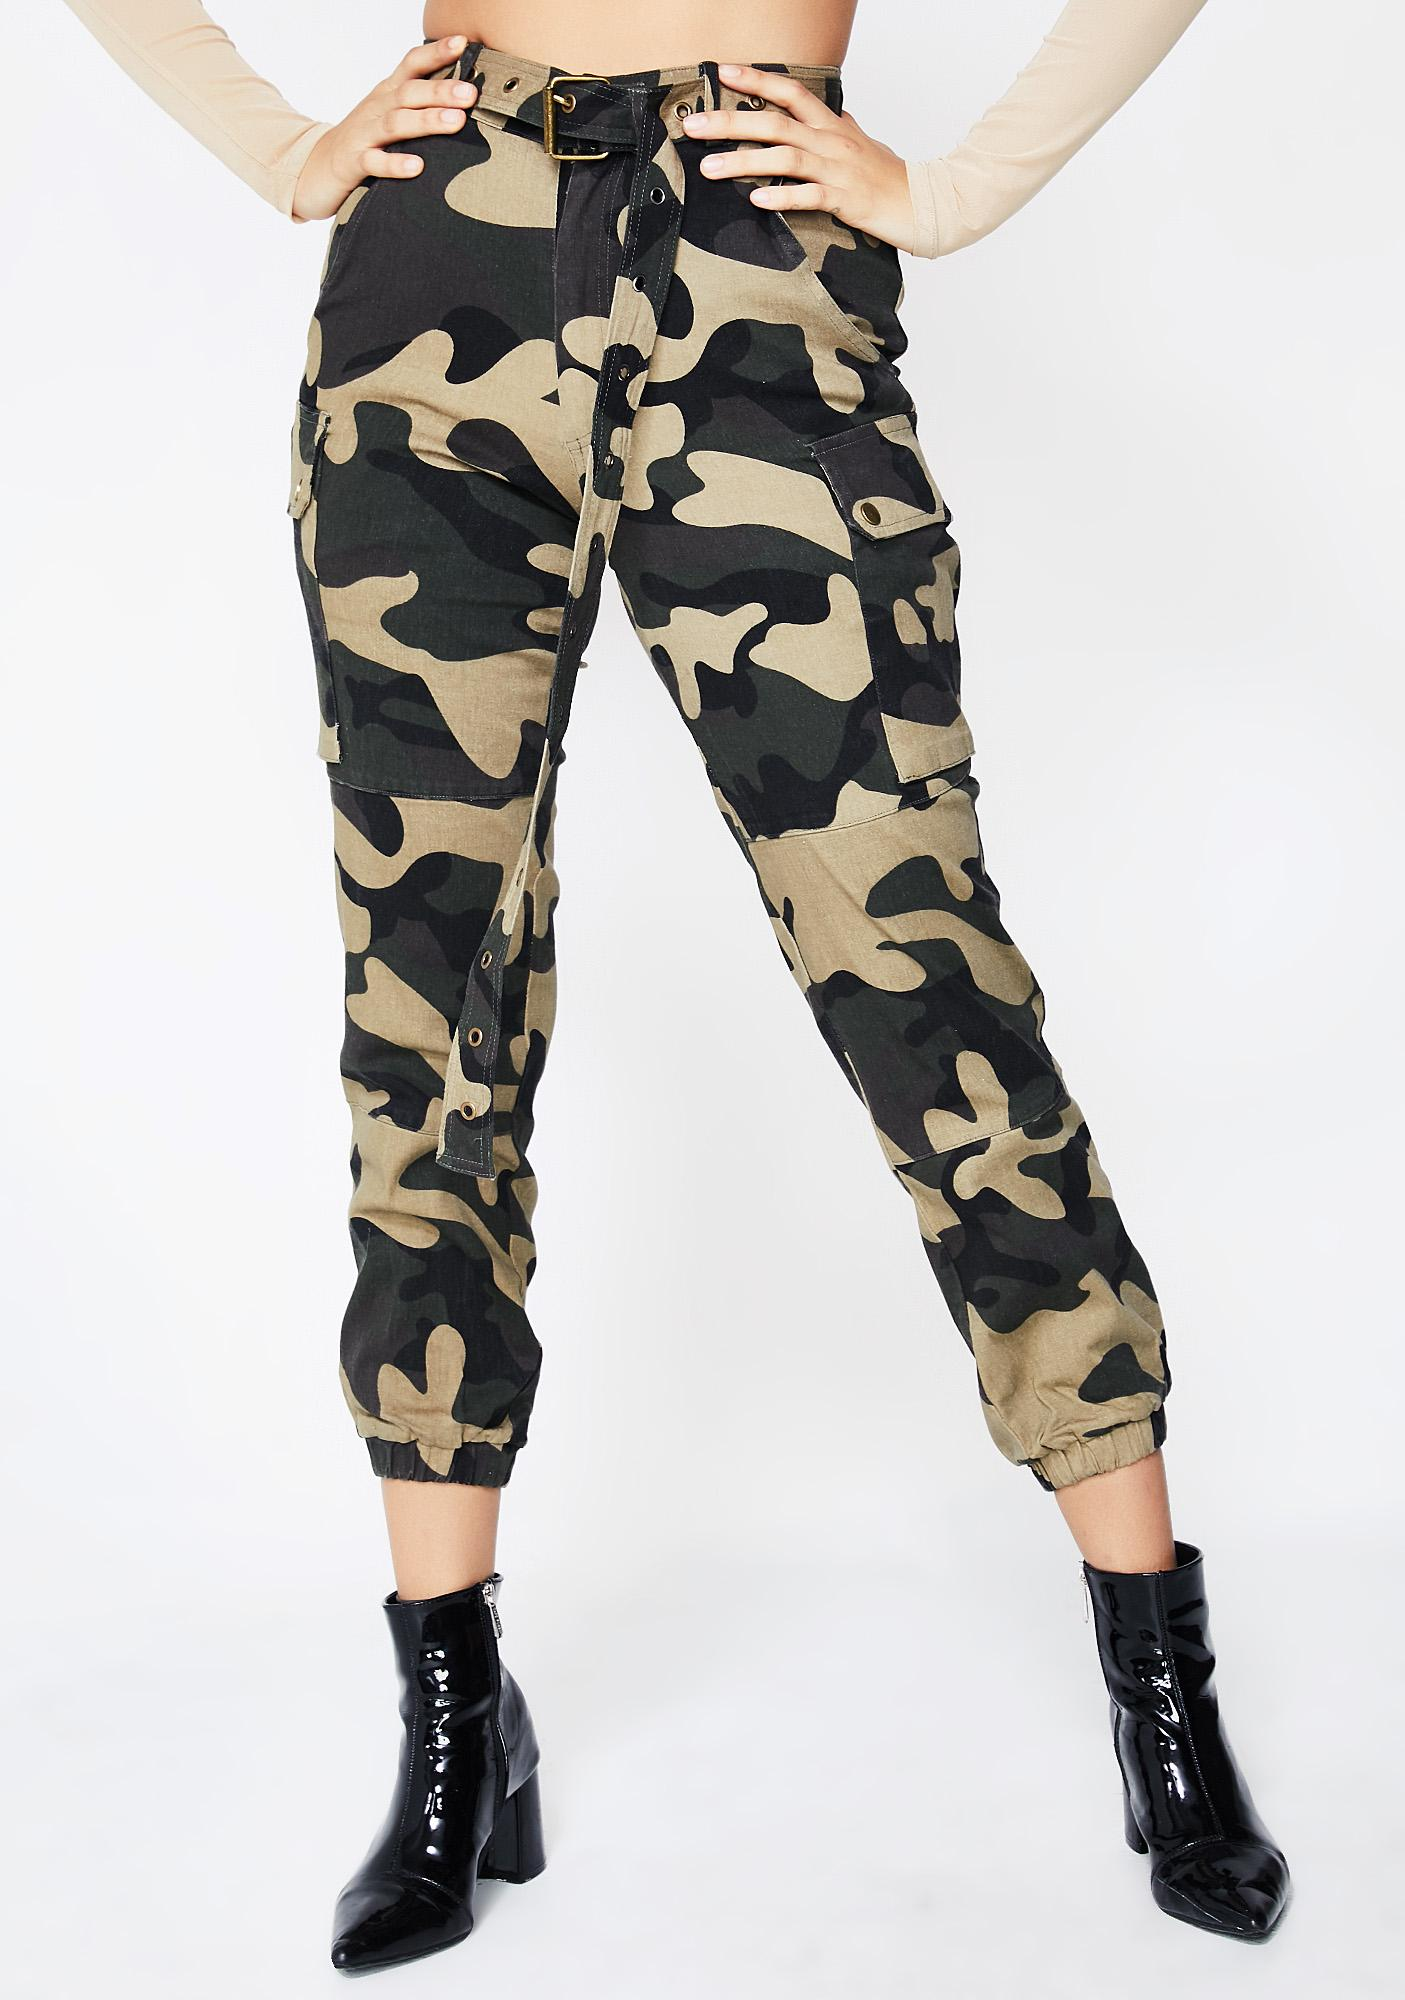 6a27e6eecb02b High Waisted Camo Cargo Pants | Dolls Kill